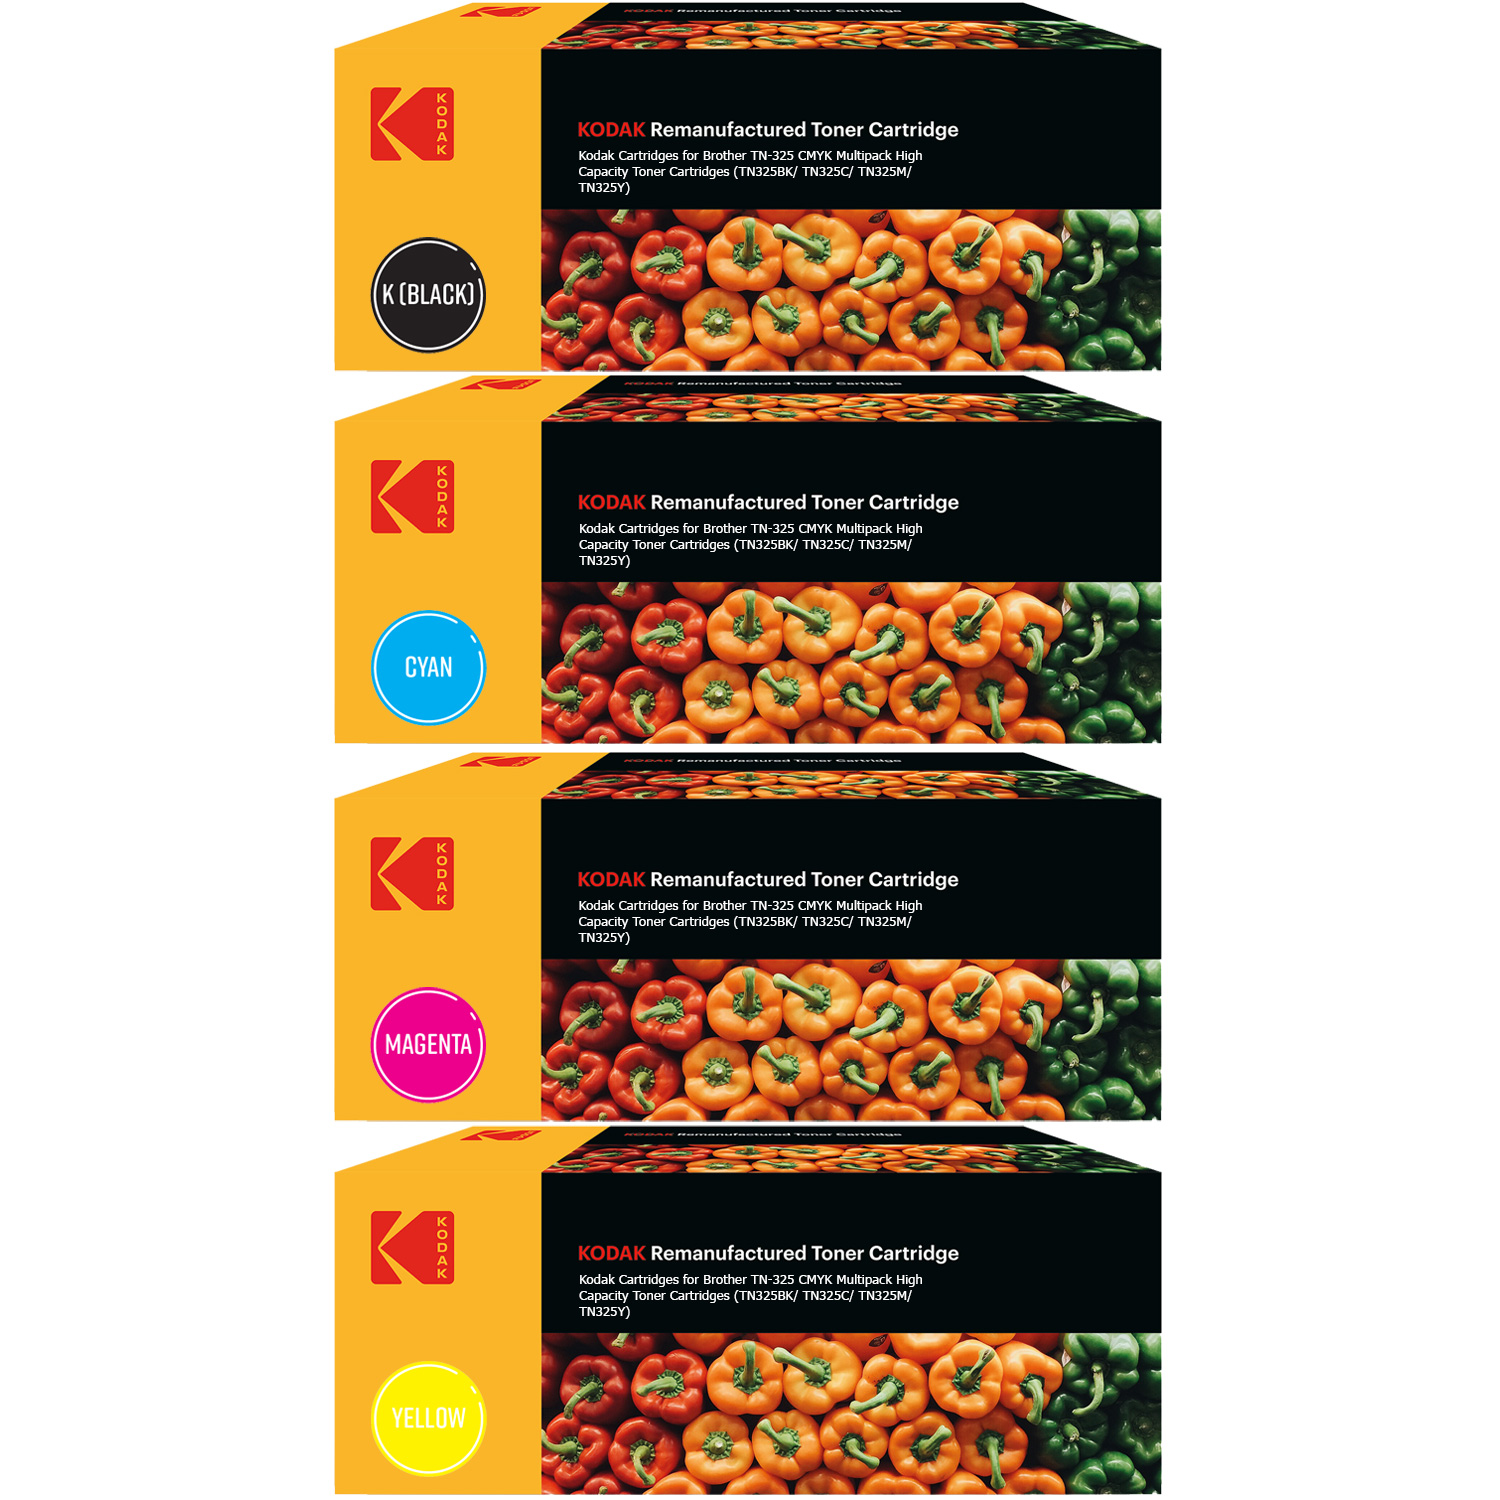 Ultimate Brother TN-325 CMYK Multipack High Capacity Toner Cartridges (TN325BK/ TN325C/ TN325M/ TN325Y) (Kodak KODTN325BK/ KODTN325C/ KODTN325M/ KODTN325Y)